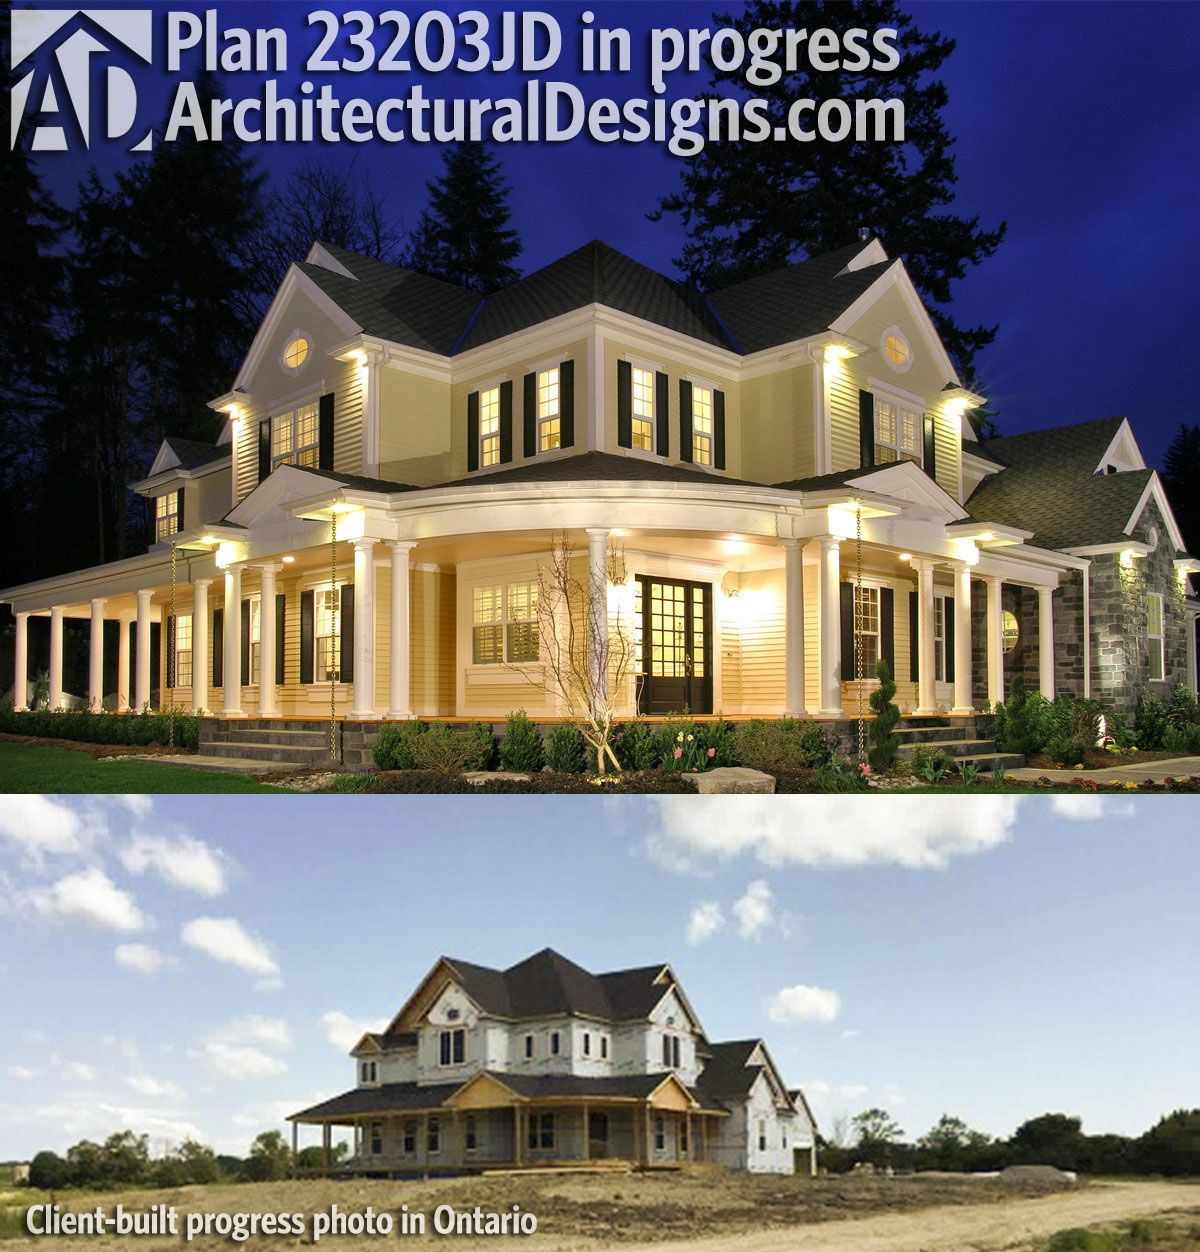 Plan 23203jd A Bath For Every Bedroom Country House Plans My Dream Home Dream House